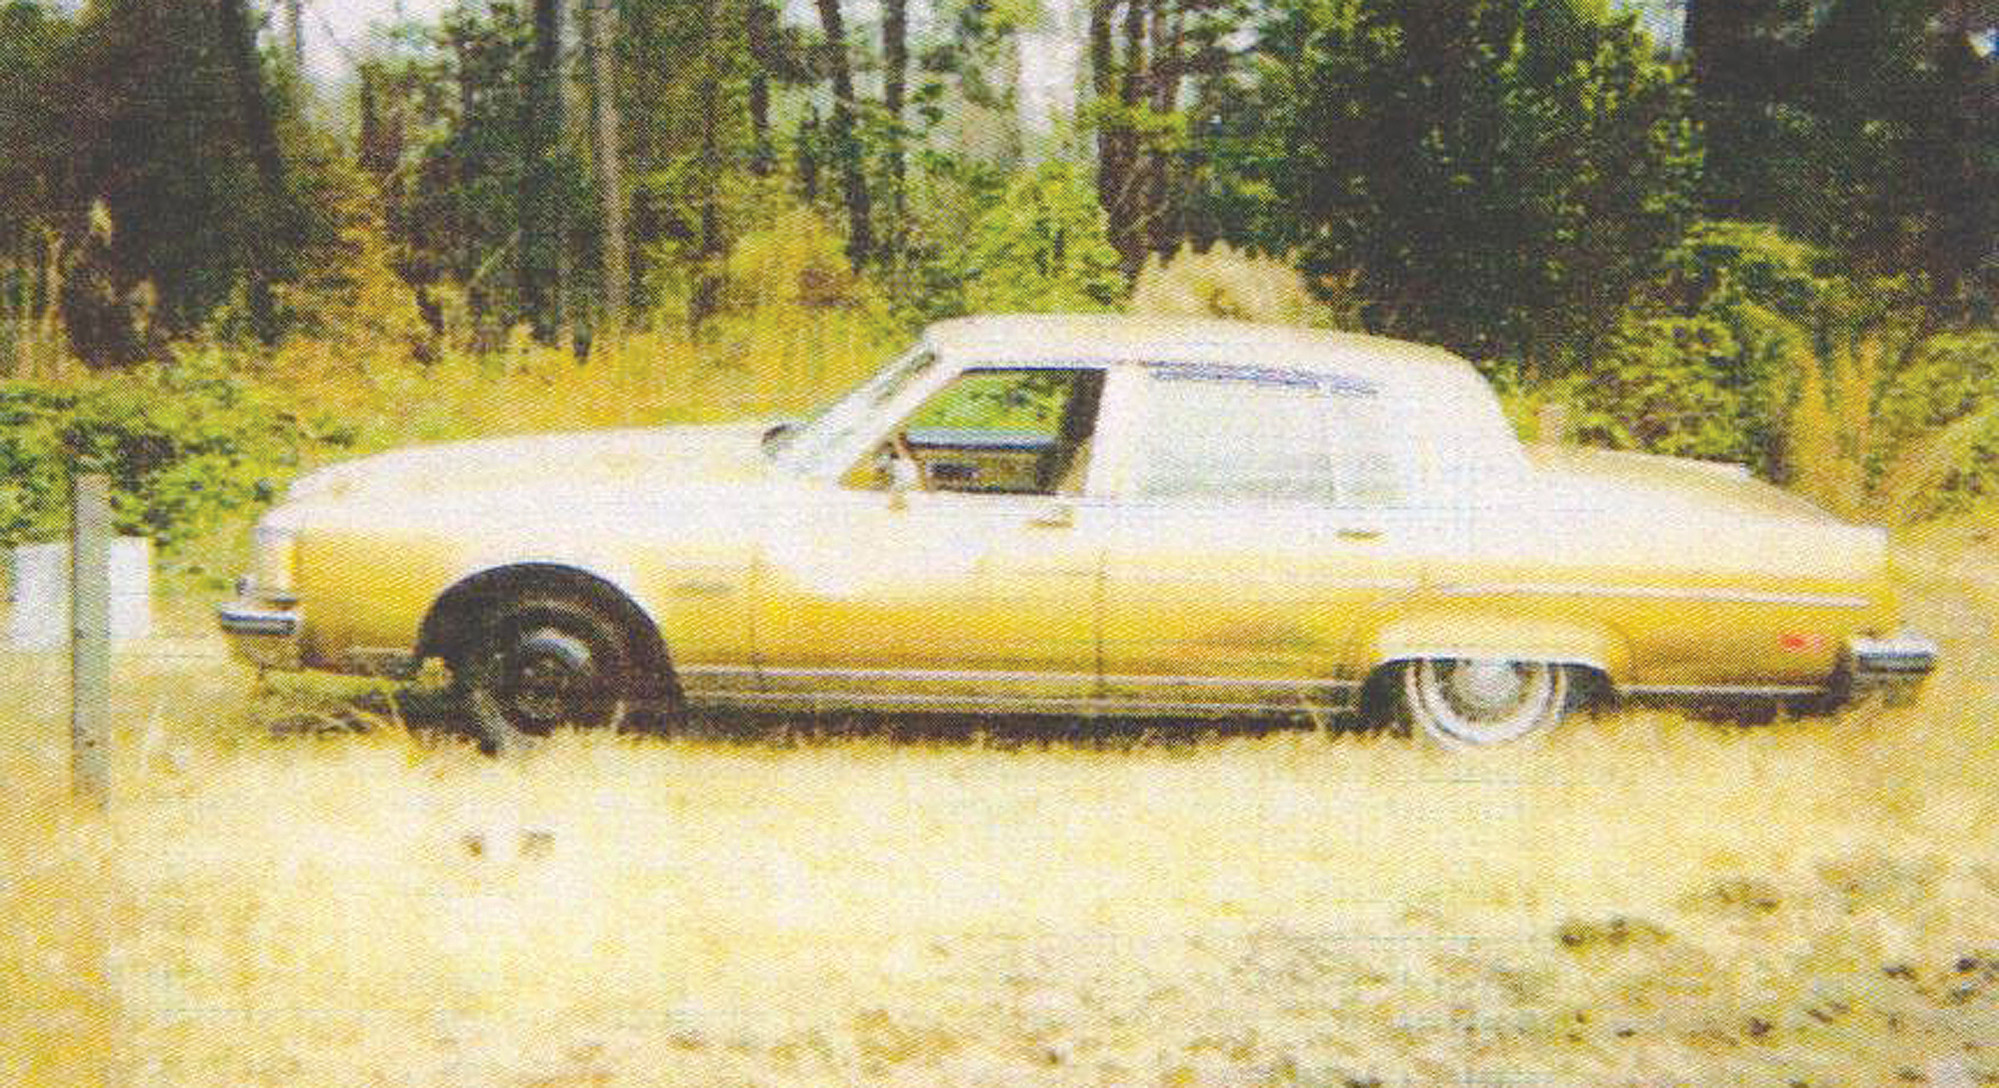 Richard Gary's gold 1980 Oldsmobile Regency was located about half a mile off St. Pauls Church Road one month after he was reported missing.